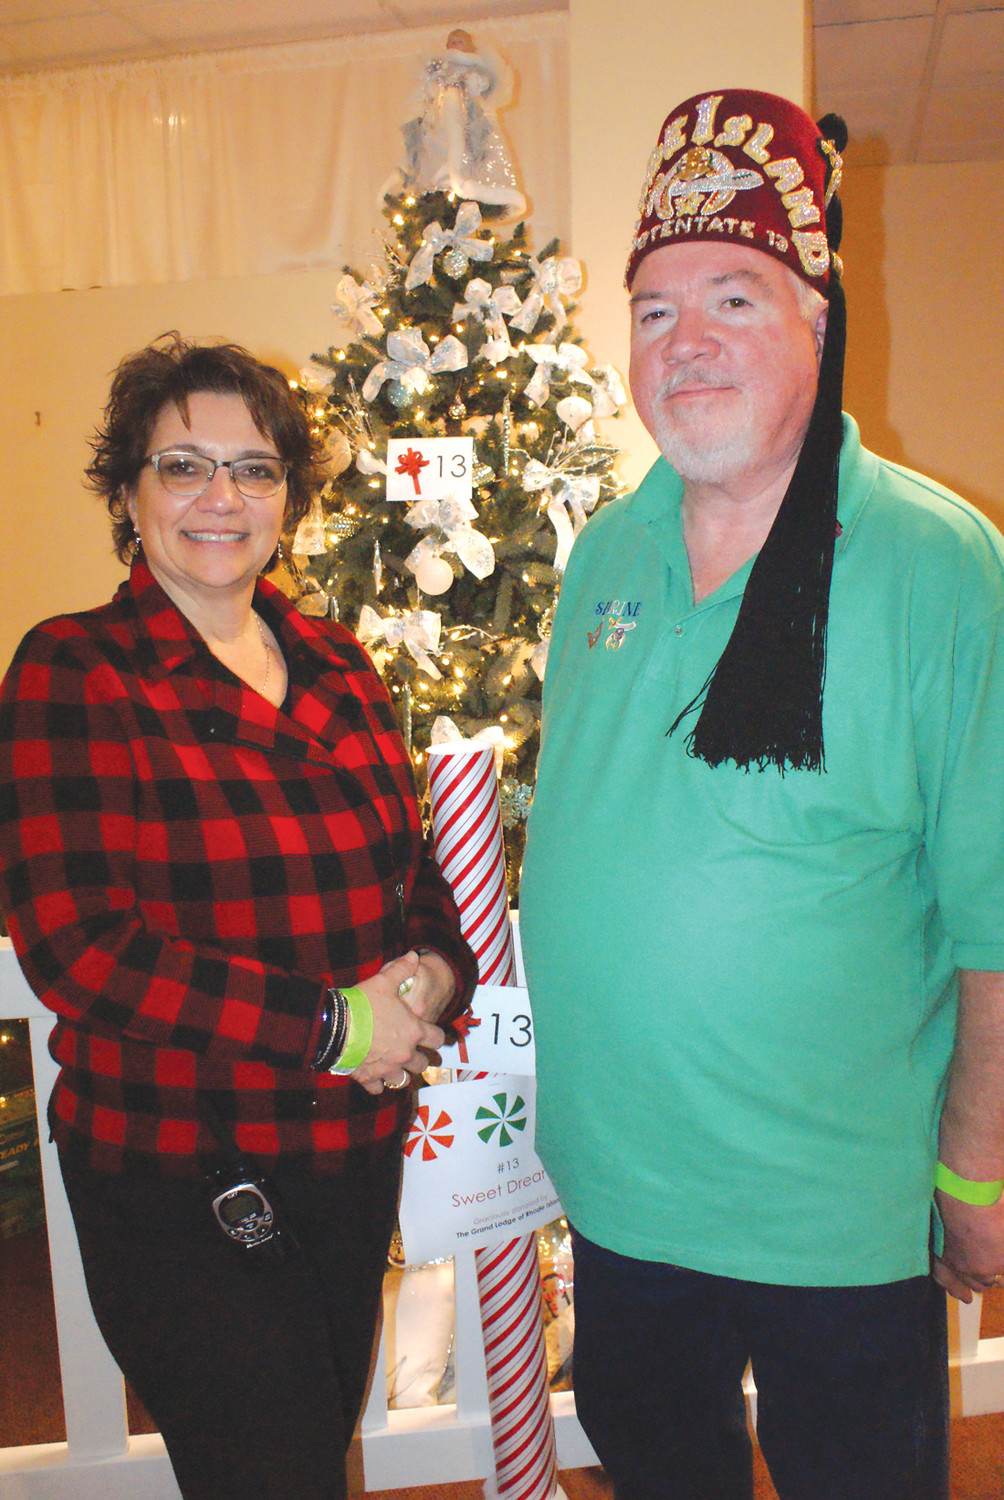 LEADERSHIP: Pictured is Paula Cardi, event coordinator along with Potentate Robert J. O'Brien in front of one of the trees at The FEZ-tival of Trees which was donated by The Grand Lodge of RI.